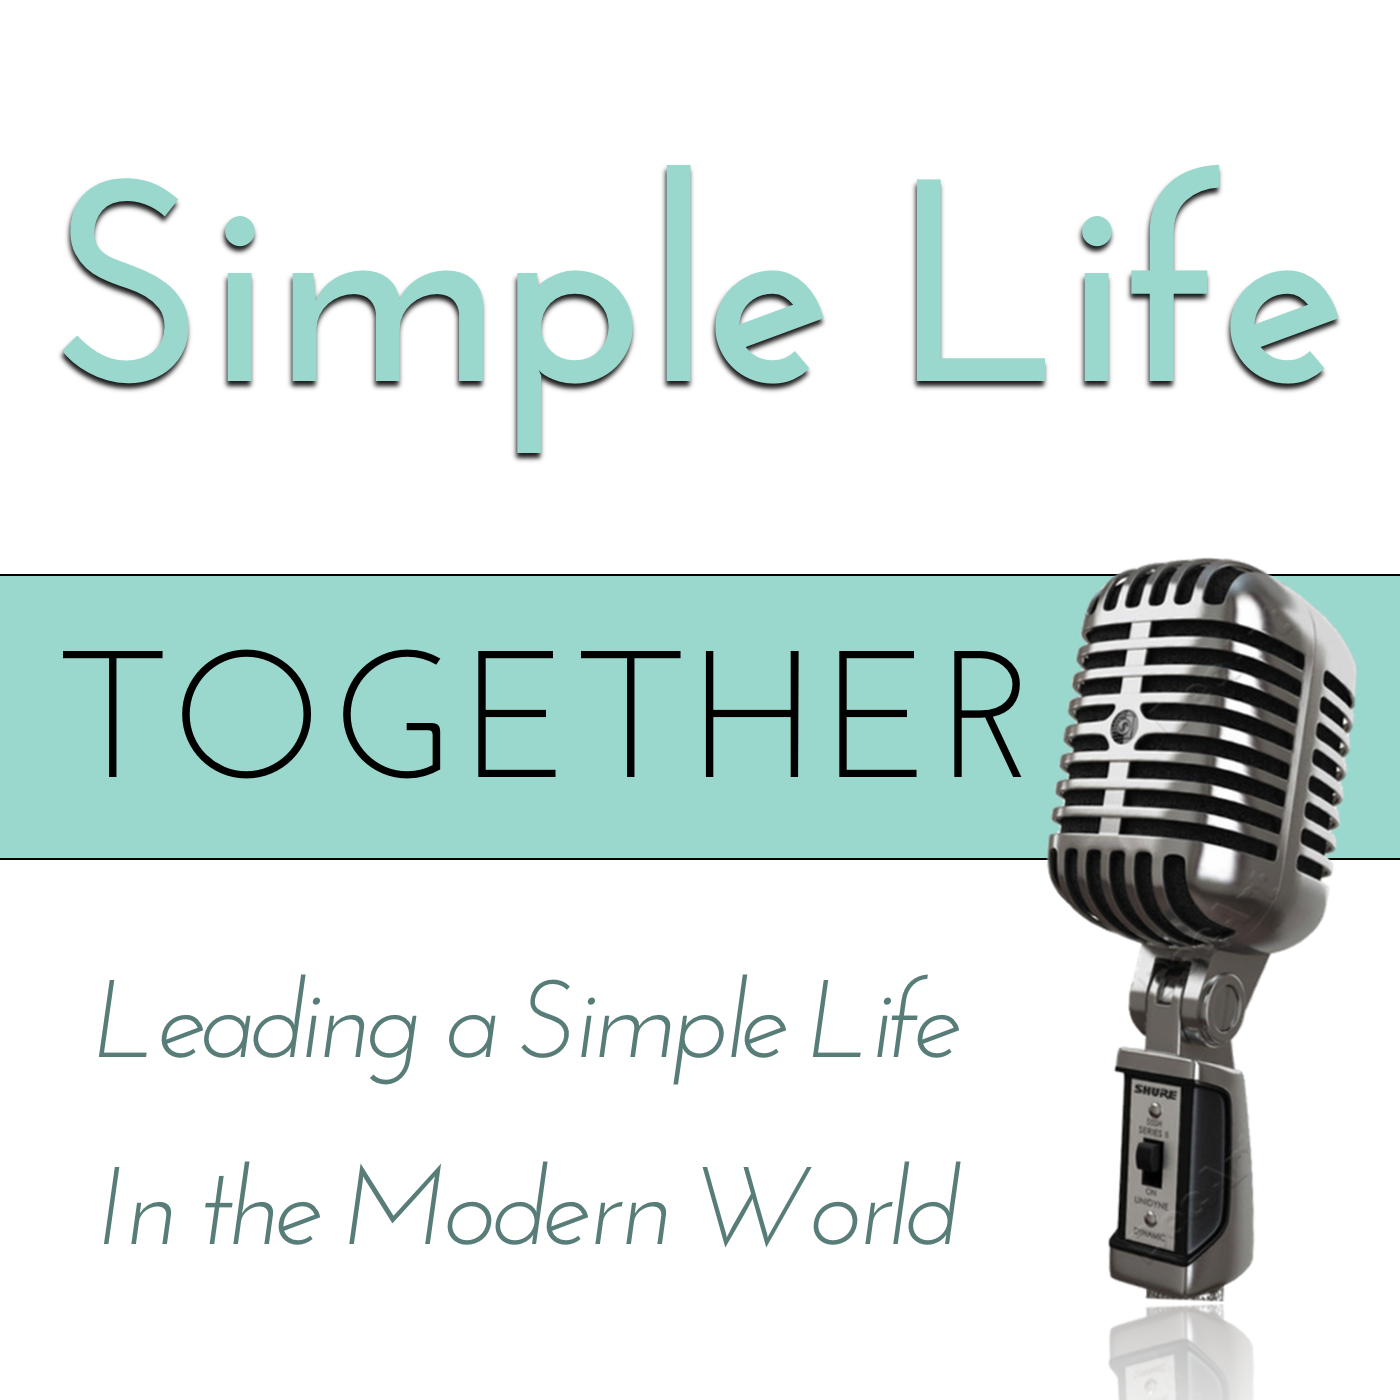 Simple Life Together